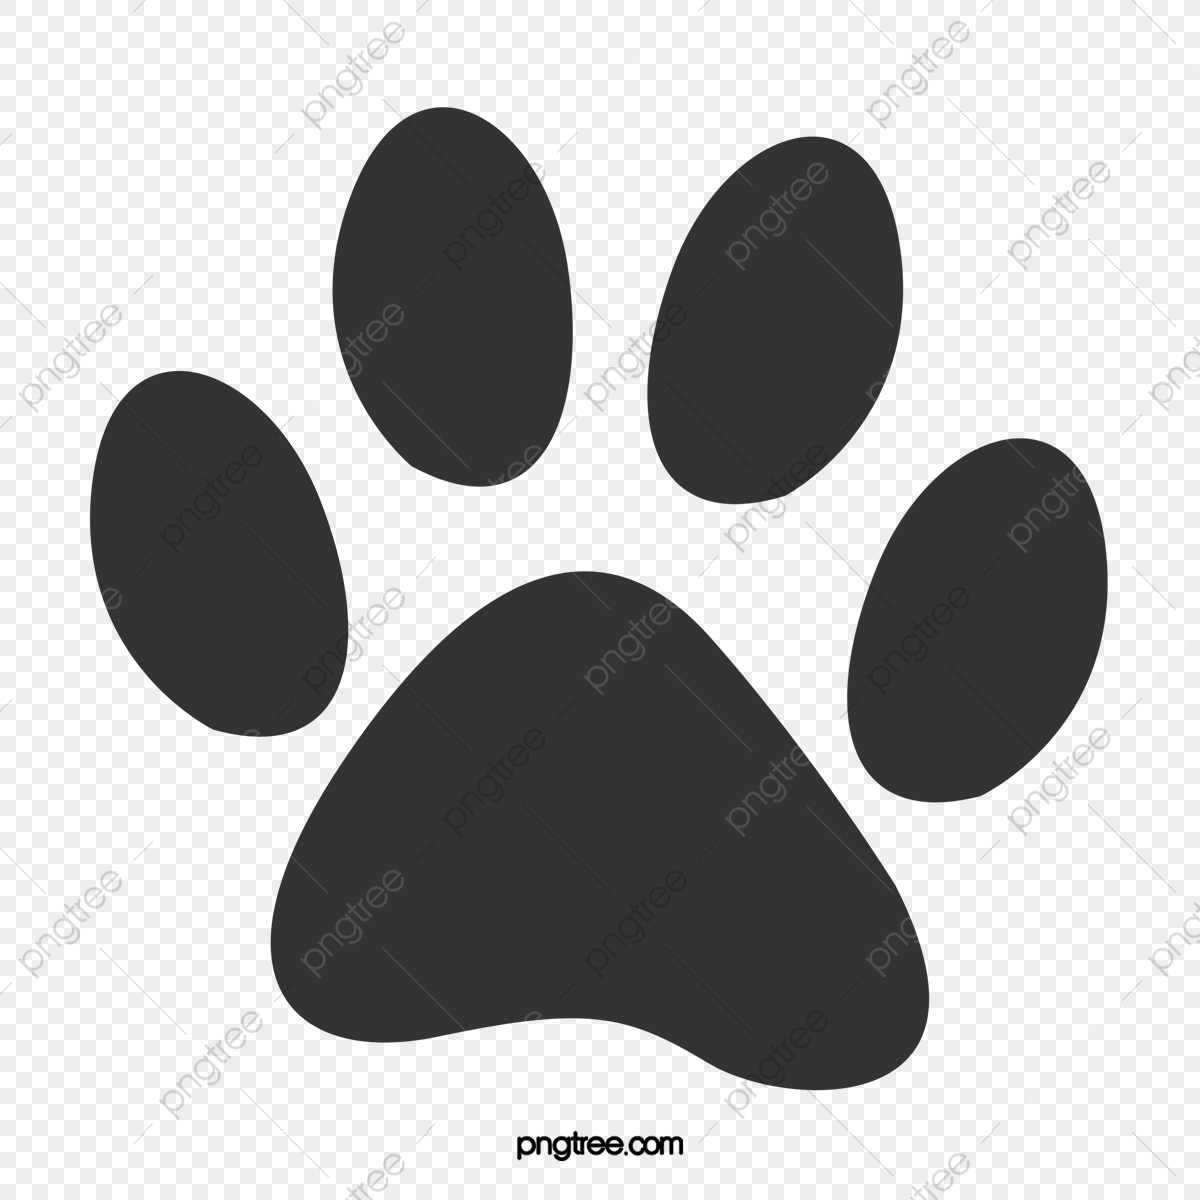 Paw Prints Png Images Vector And Psd Files Free Download On Pngtree Download the transparent clipart and use it for free creative project. https pngtree com freepng black hand painted 5054119 html